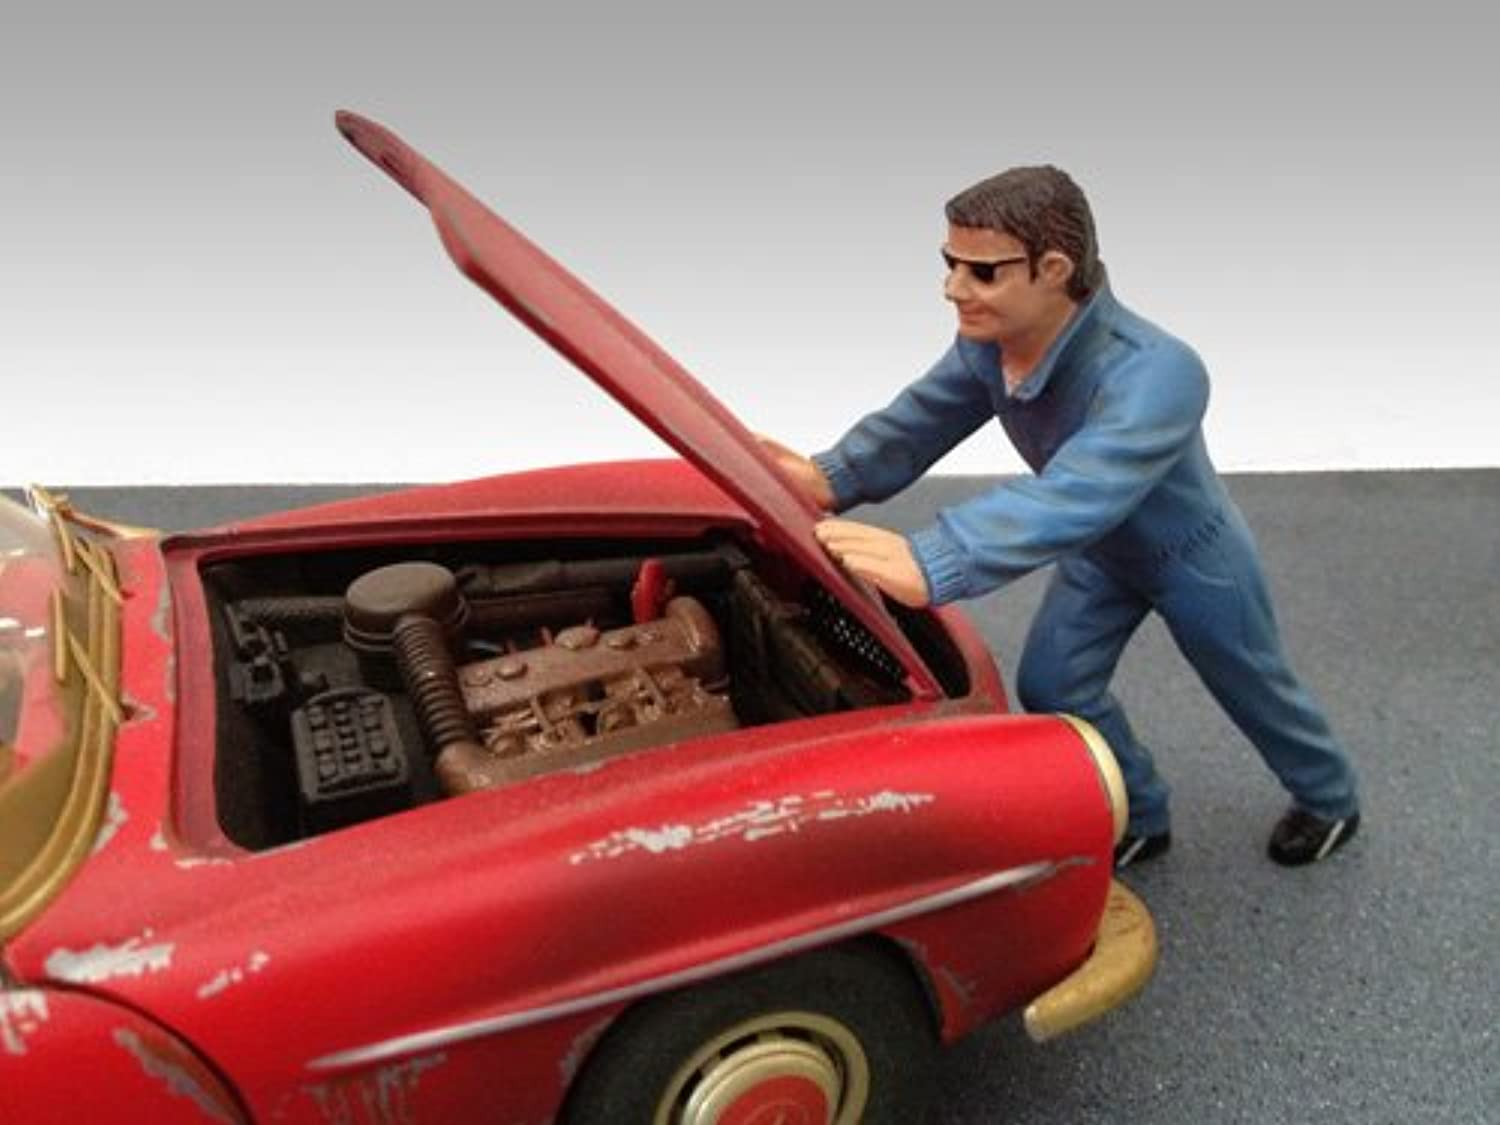 Mechanic Ken Figure For 1 18 Models by American Diorama 23790